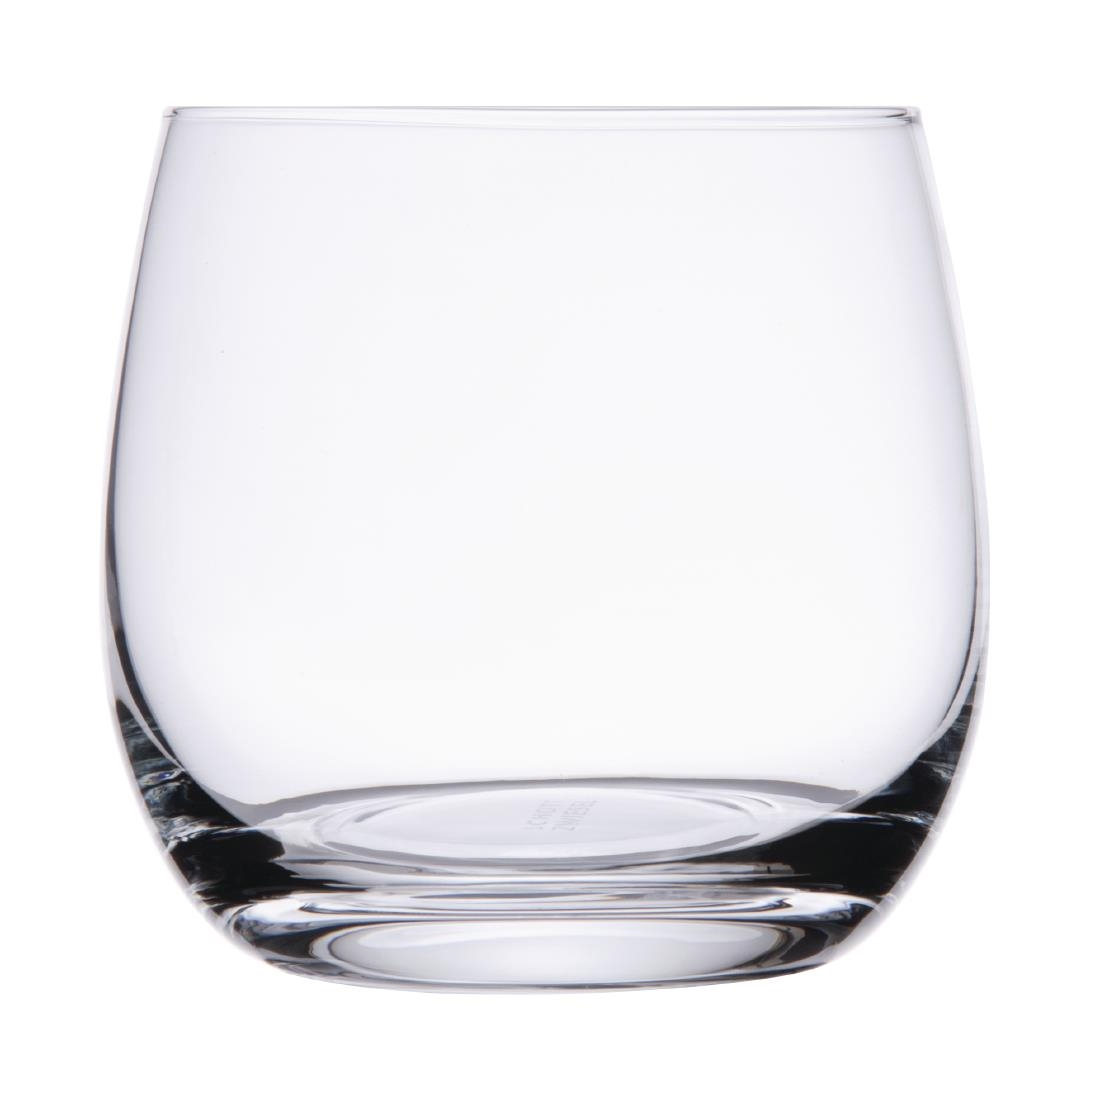 Schott Zwiesel Banquet Crystal Rocks Glass 340ml (Pack of 6) Pack of 6 Image